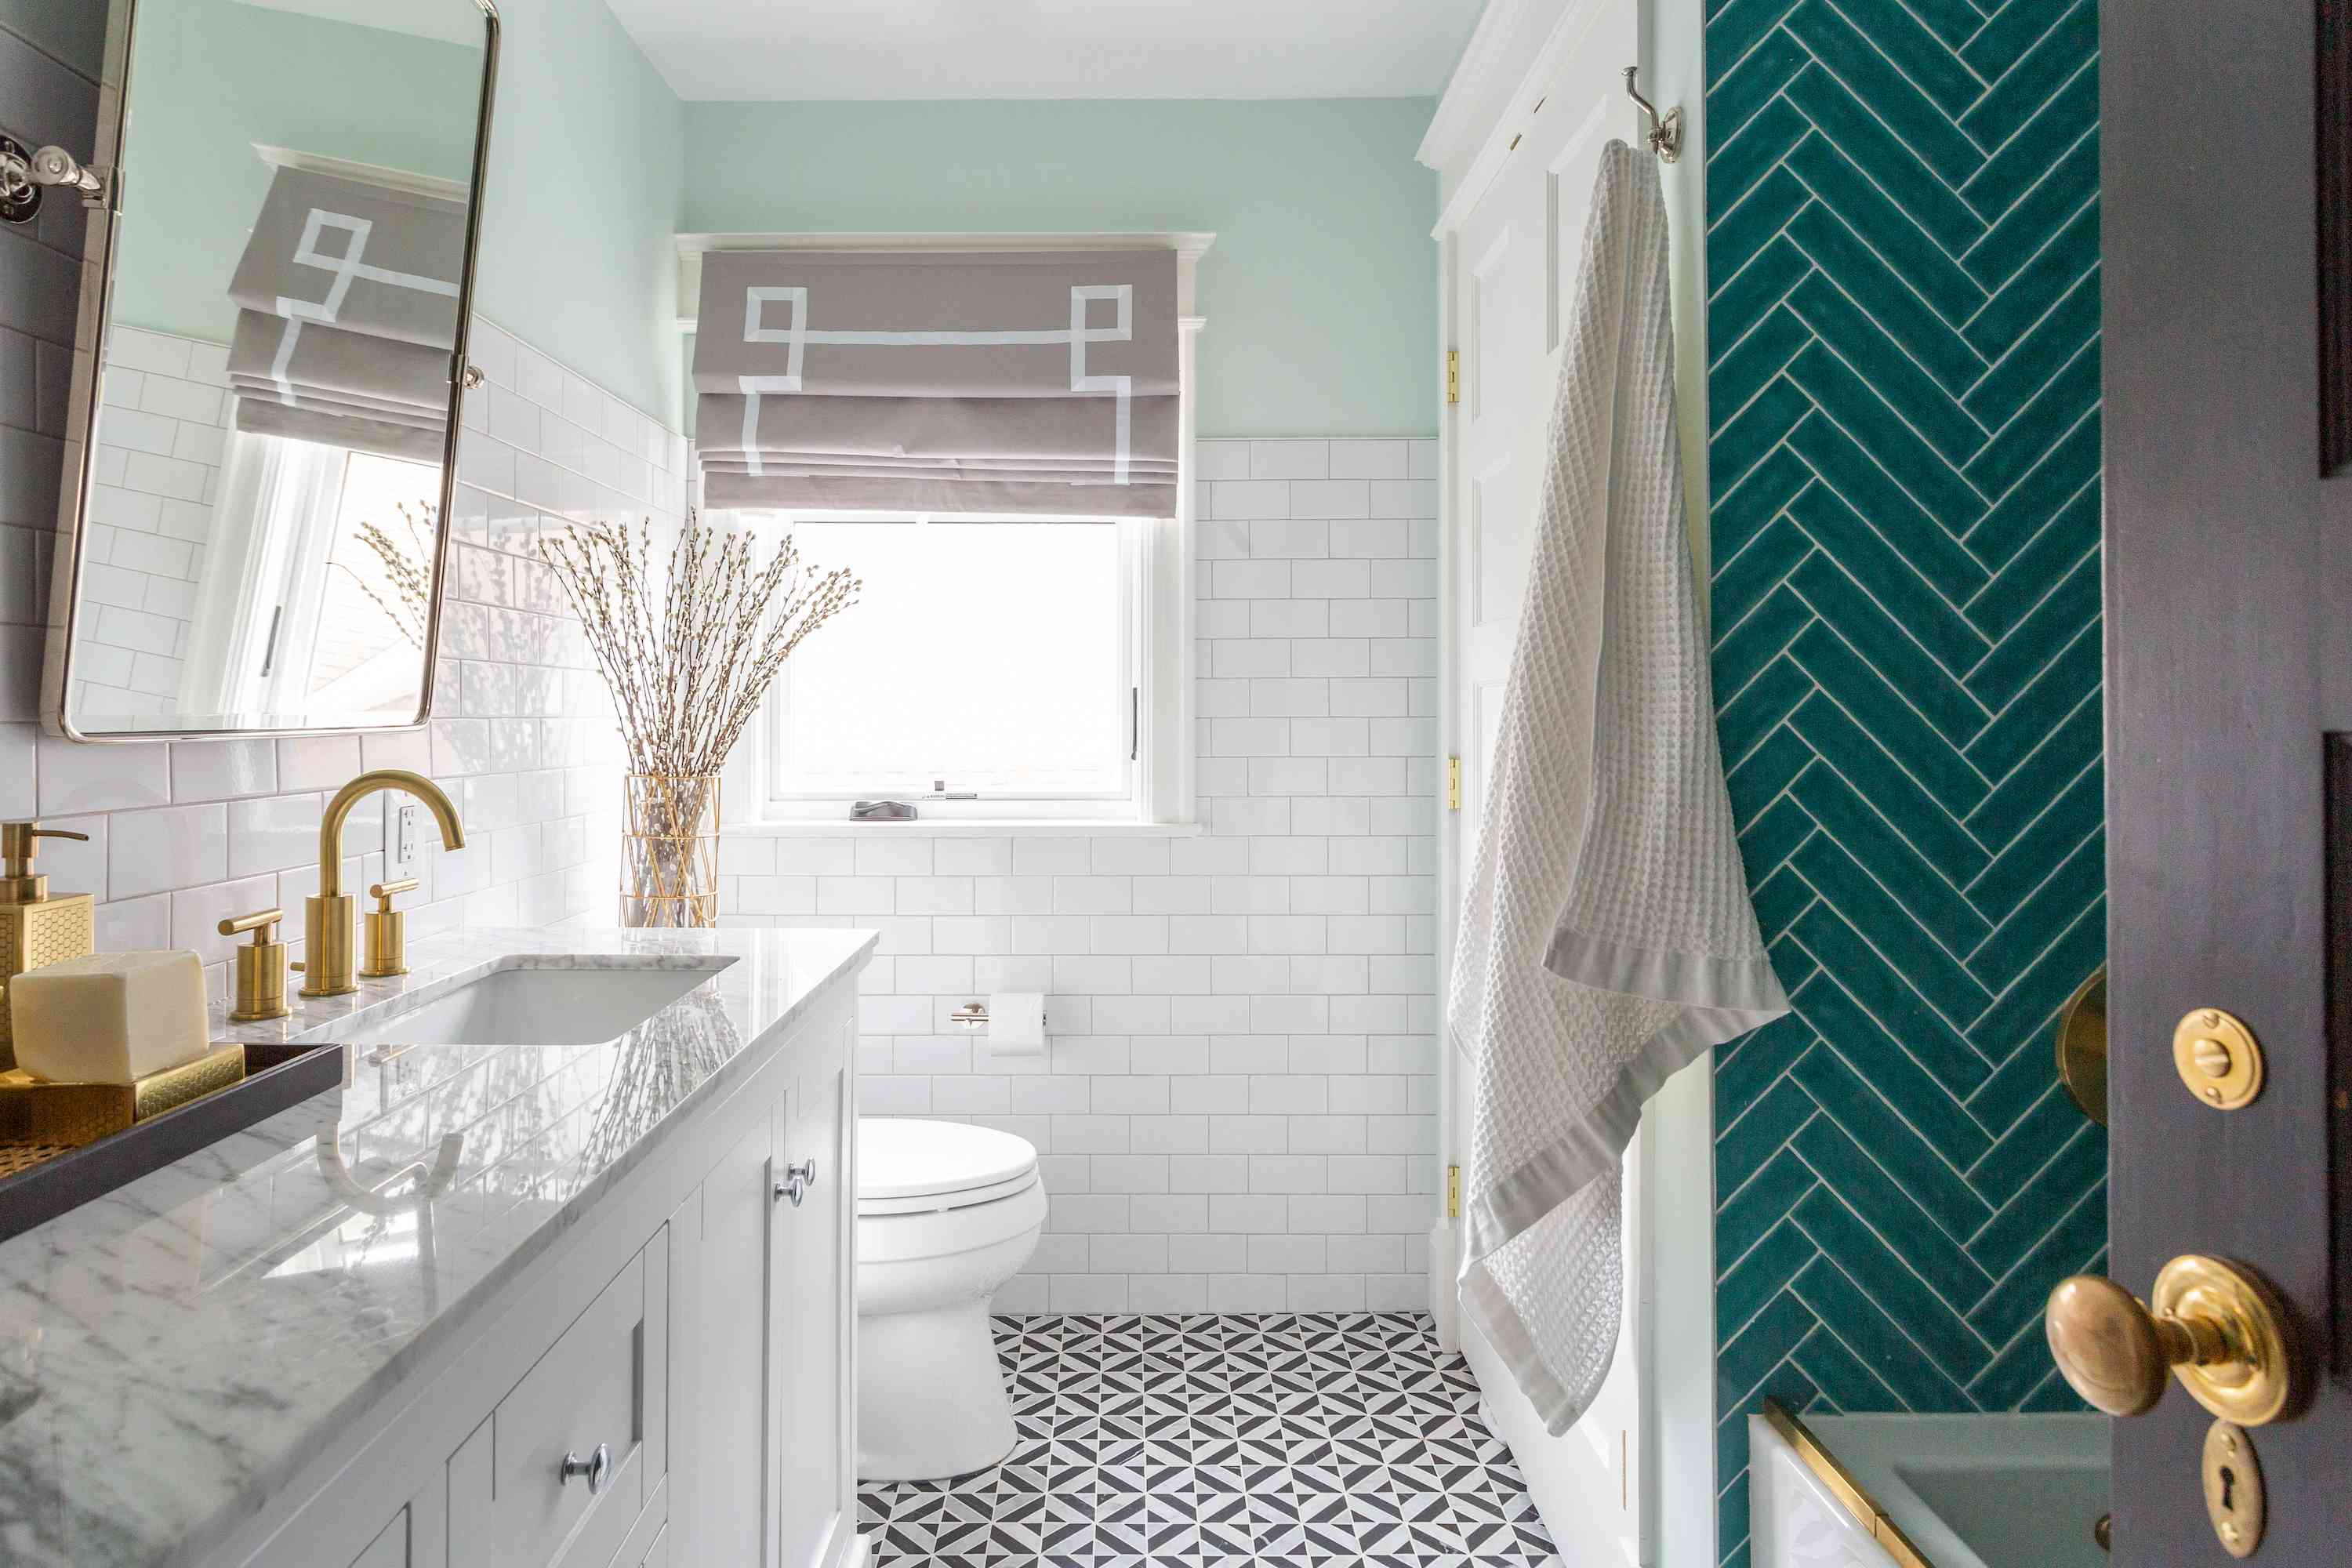 Spacious bathroom with teal tile in shower.